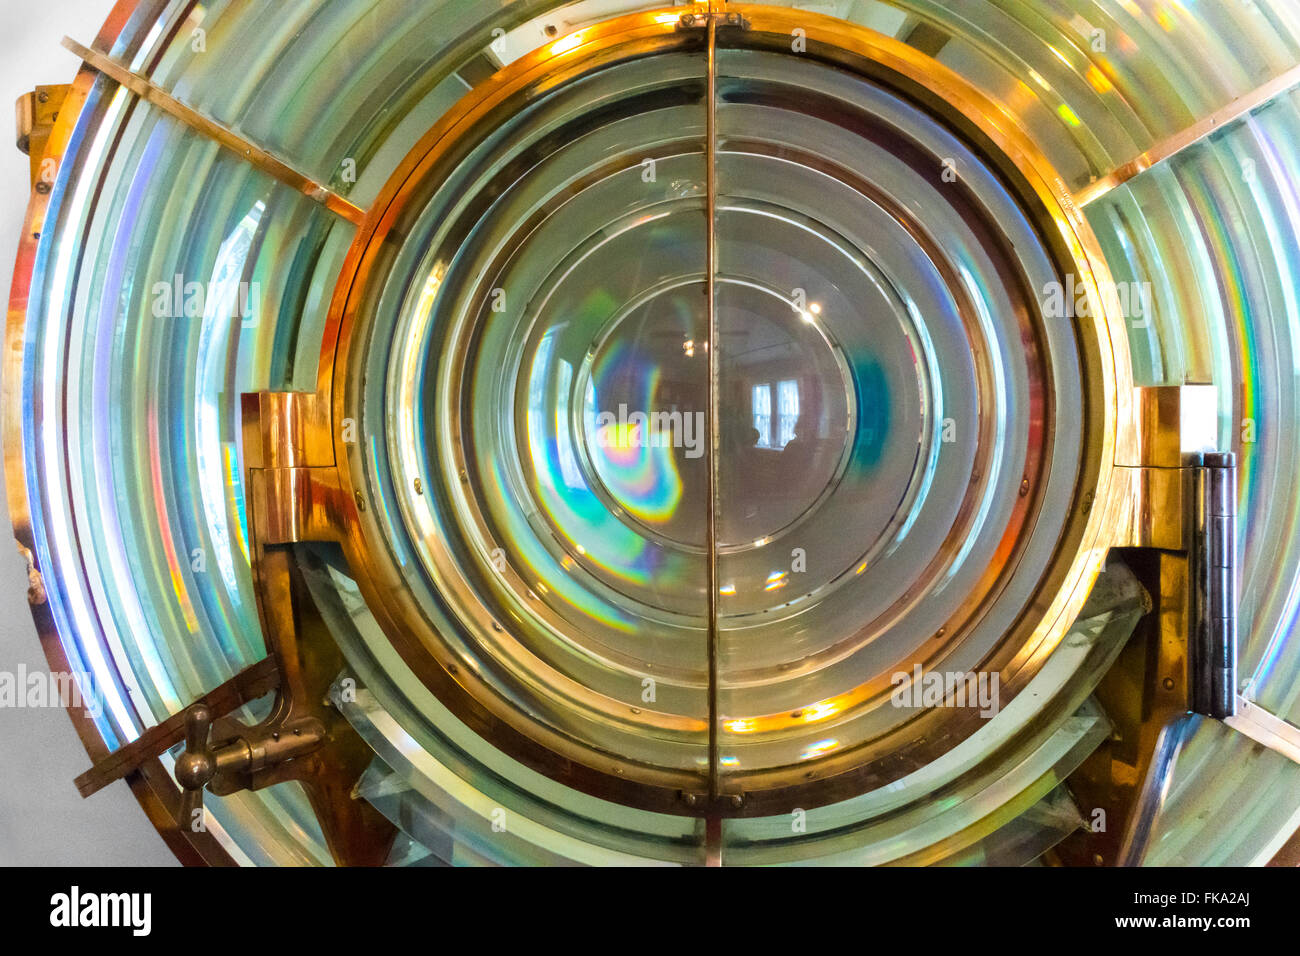 Fresnel lens from the Marblehead Lighthouse on Lake Erie Ohio. Lens of the 3-1/2 order. - Stock Image